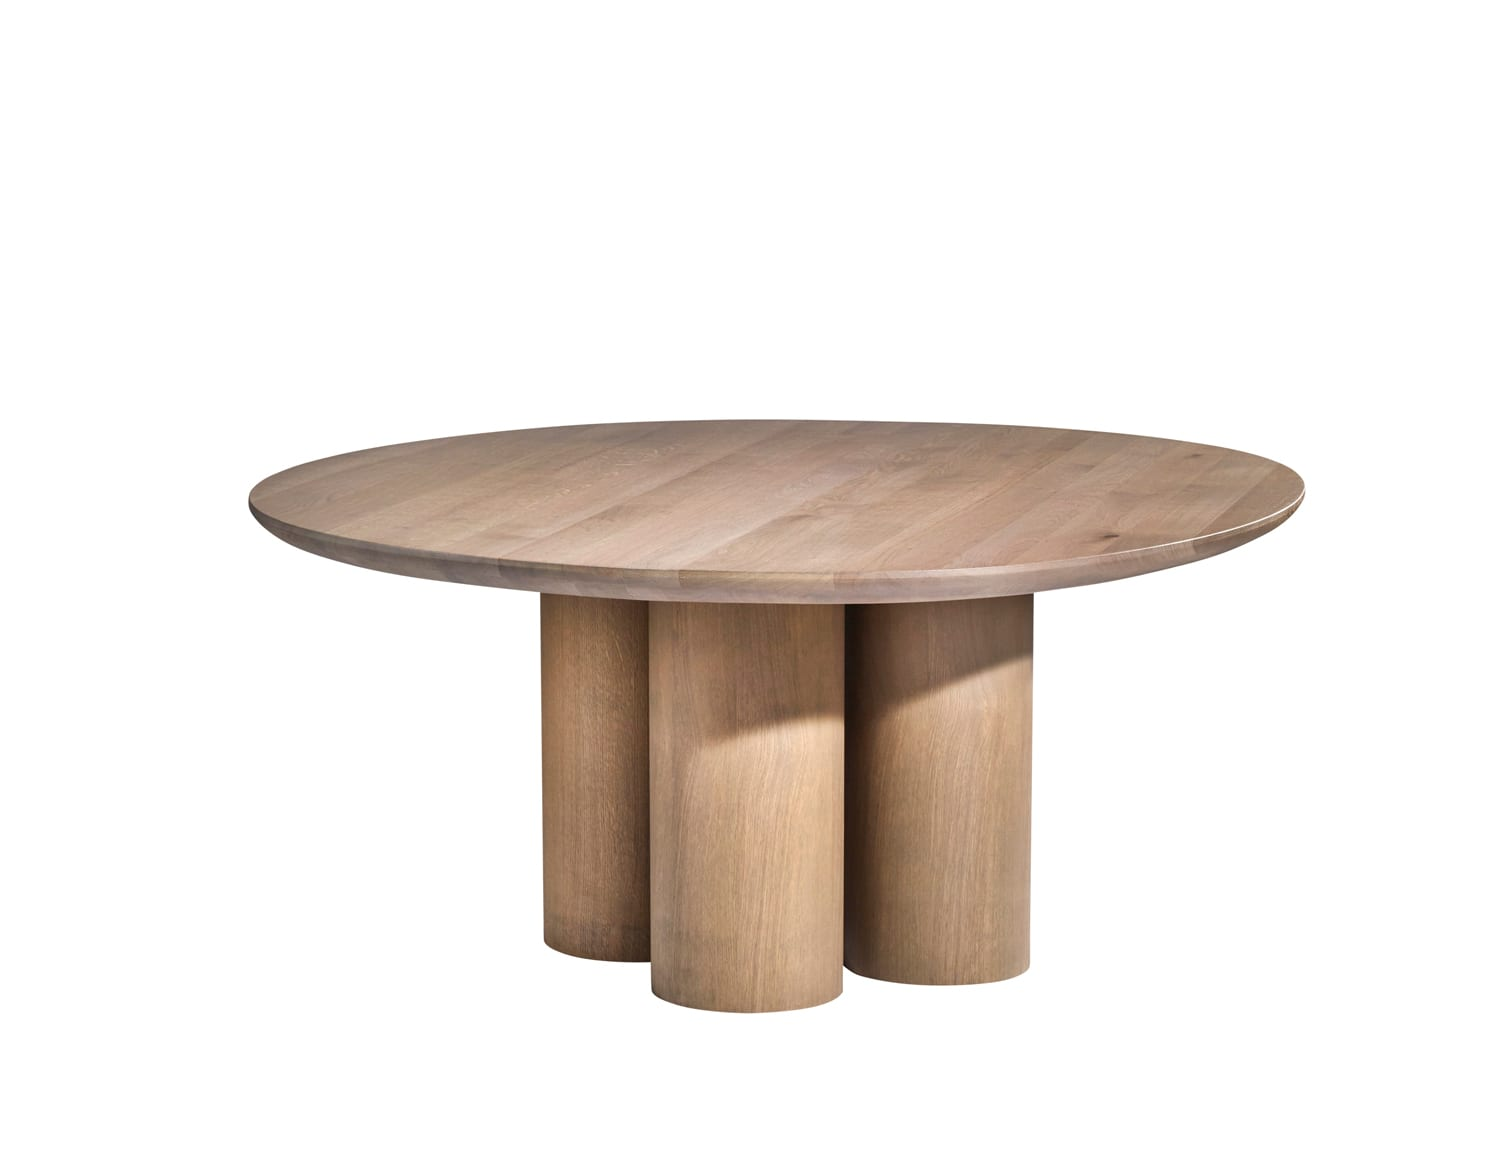 OLLE Dining Table by Studio Piet Boon Collection at IMM Cologne 2018 Yellowtrace